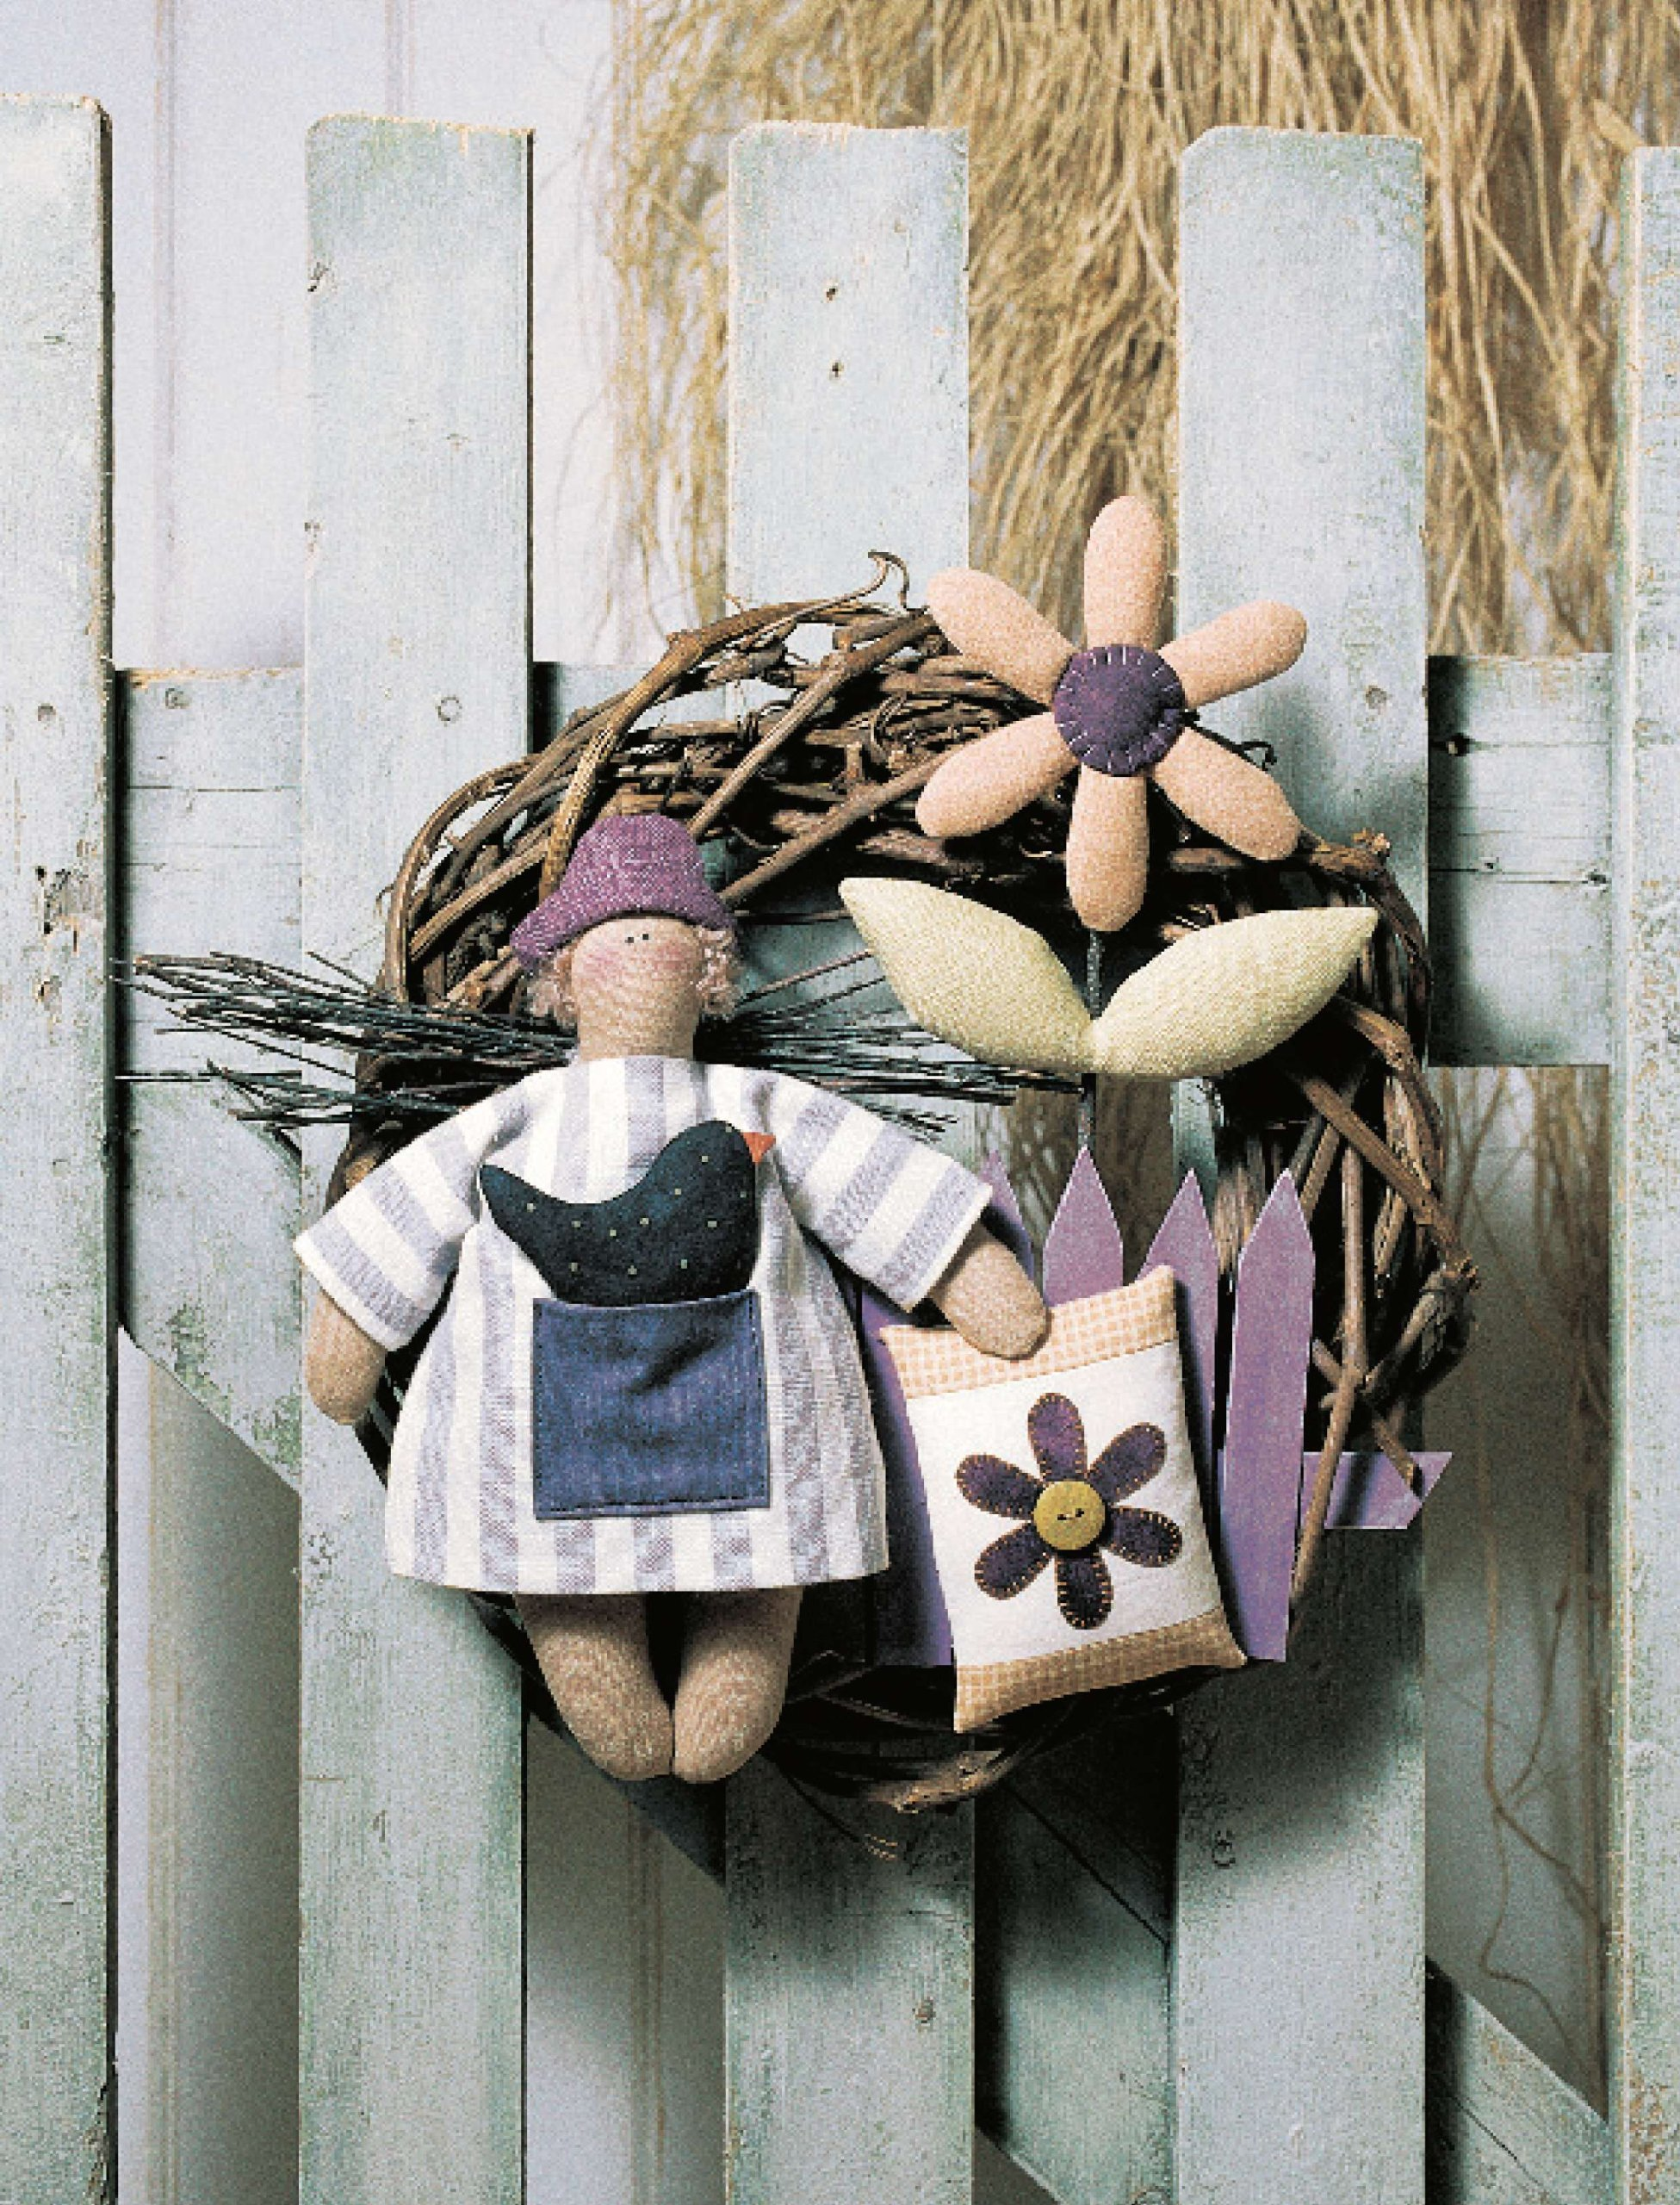 Munecos de tela y adornos para la casa / Cloth dolls and decorations for home: Tilda (Spanish Edition): Tone Finnanger: 9788498742039: Amazon.com: Books